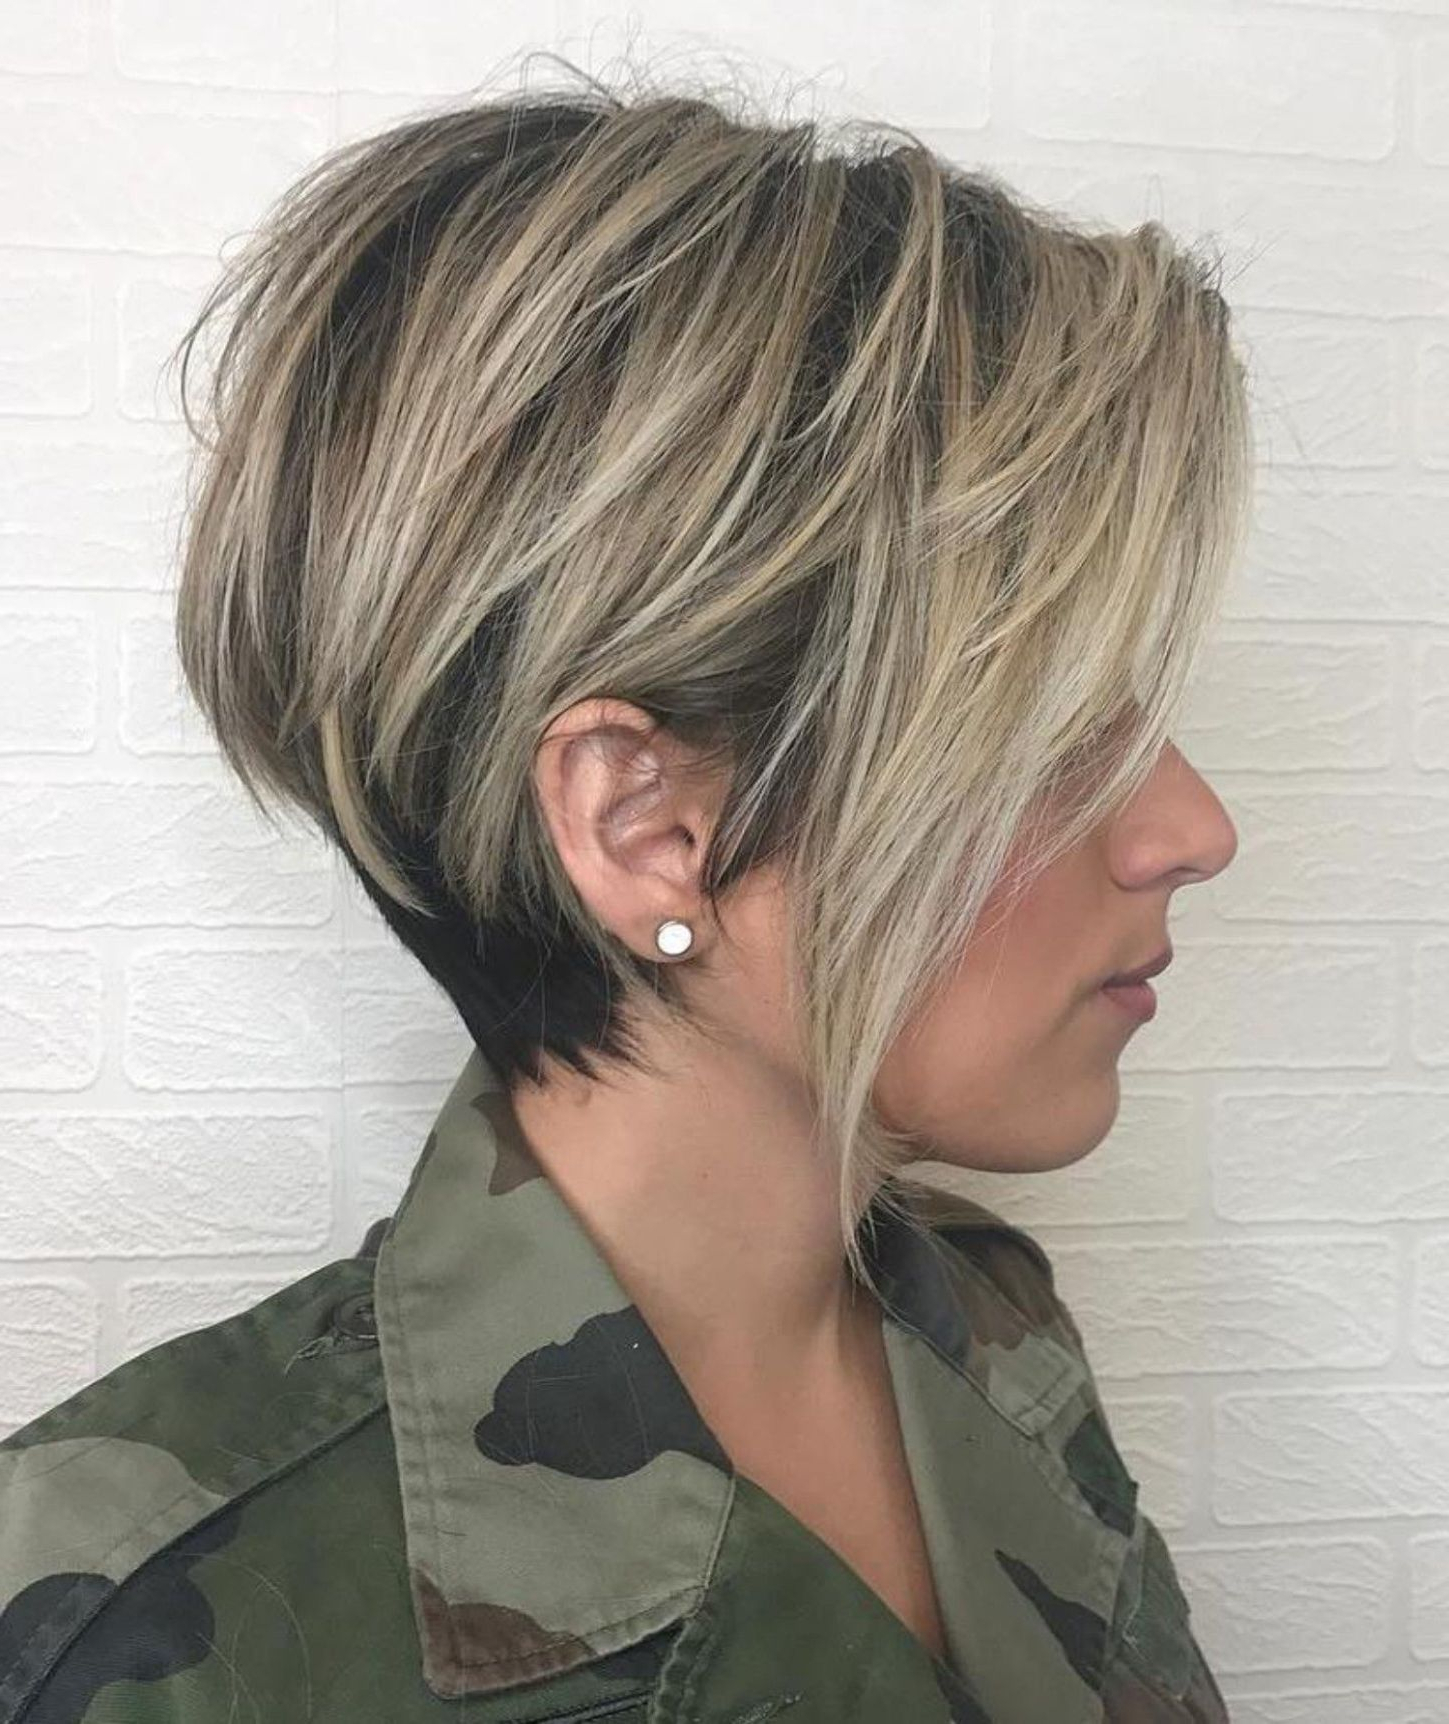 100 Mind Blowing Short Hairstyles For Fine Hair In 2018 | Hairstyle Pertaining To Short Ruffled Hairstyles With Blonde Highlights (View 6 of 20)